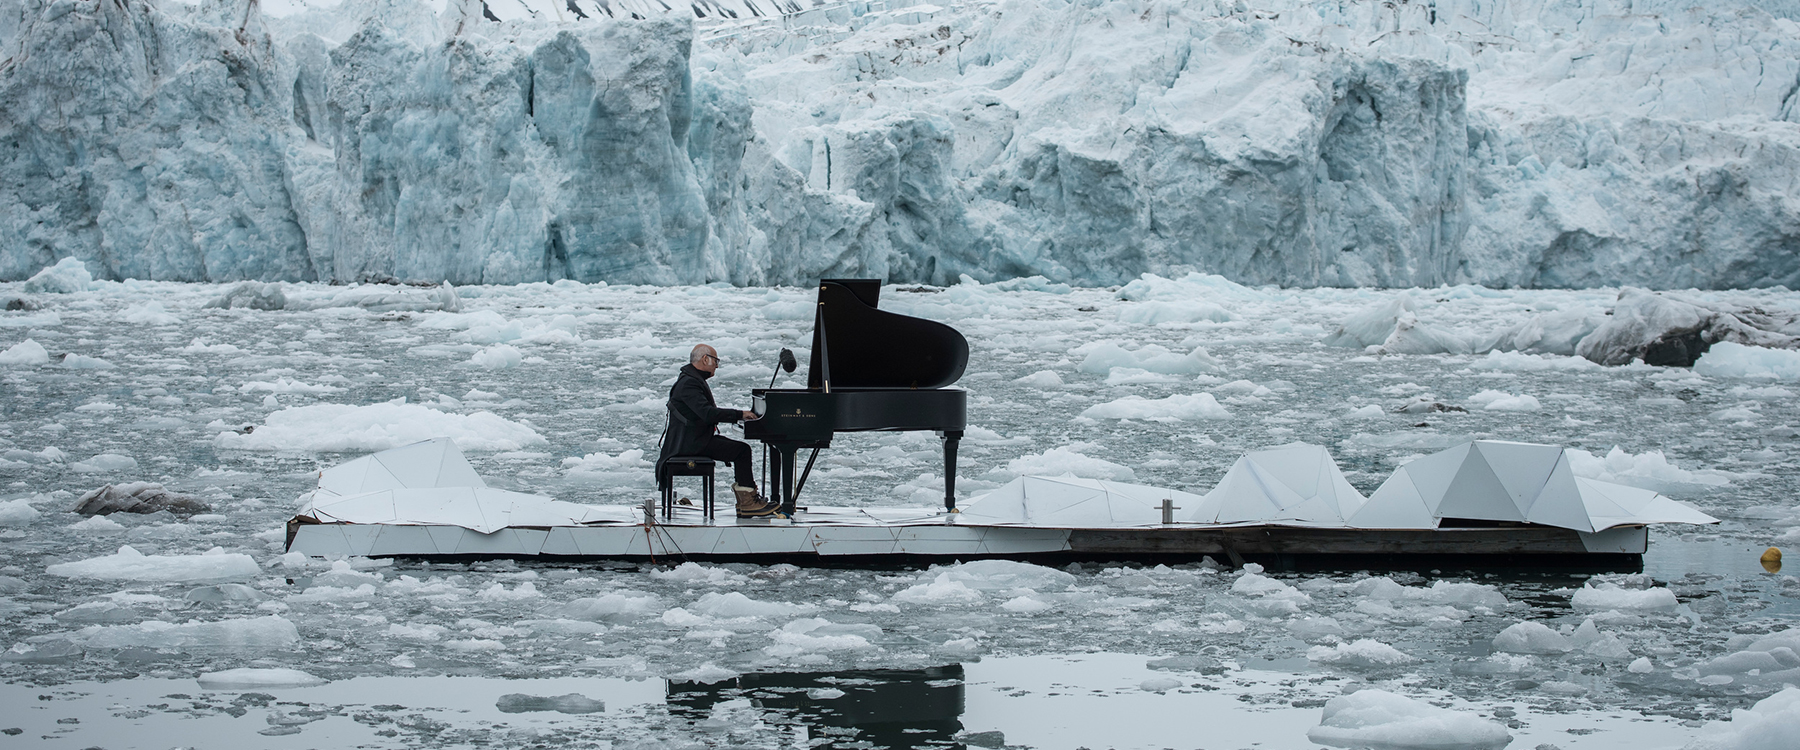 ludovico-einaudi-performs-in-the-arctic-ocean-greenpeace-designboom-1800